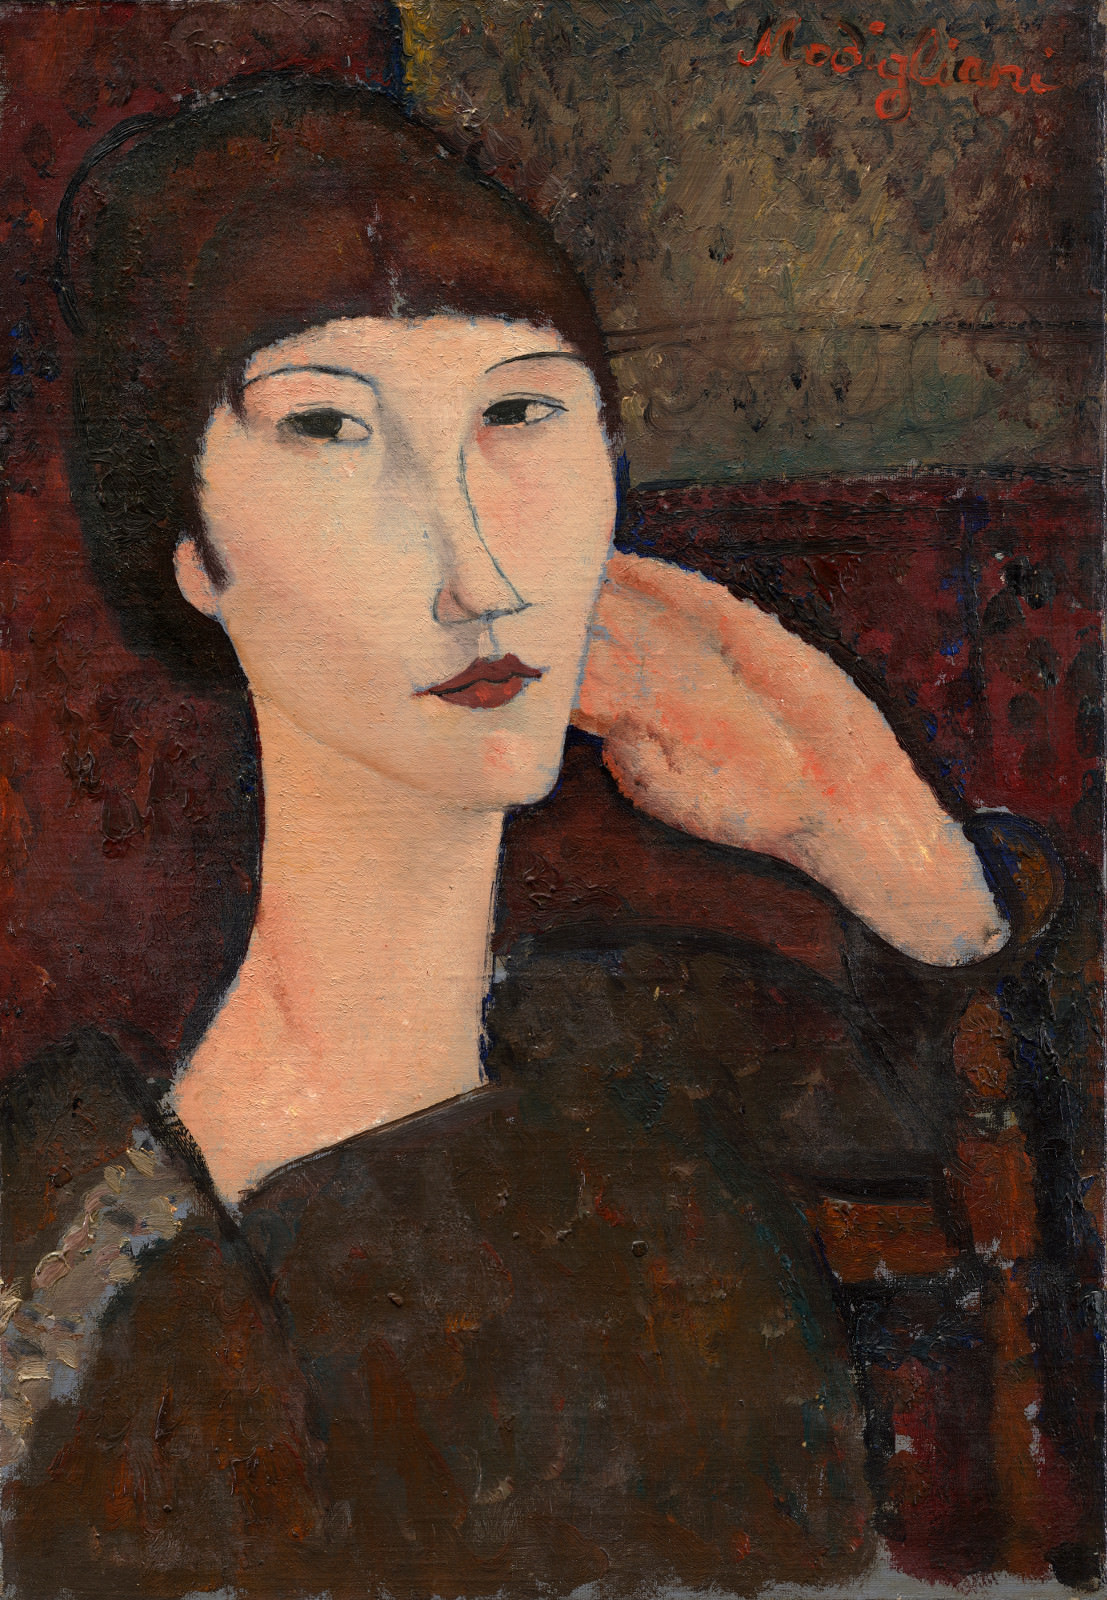 Fig. 8 - Adrienne (Mujer con explosiones), Amedeo Modigliani, 1917, El aceite de linaza en, 55.3 x 38.1 cm. National Gallery of Art, Washington. Colección de Chester Dale.